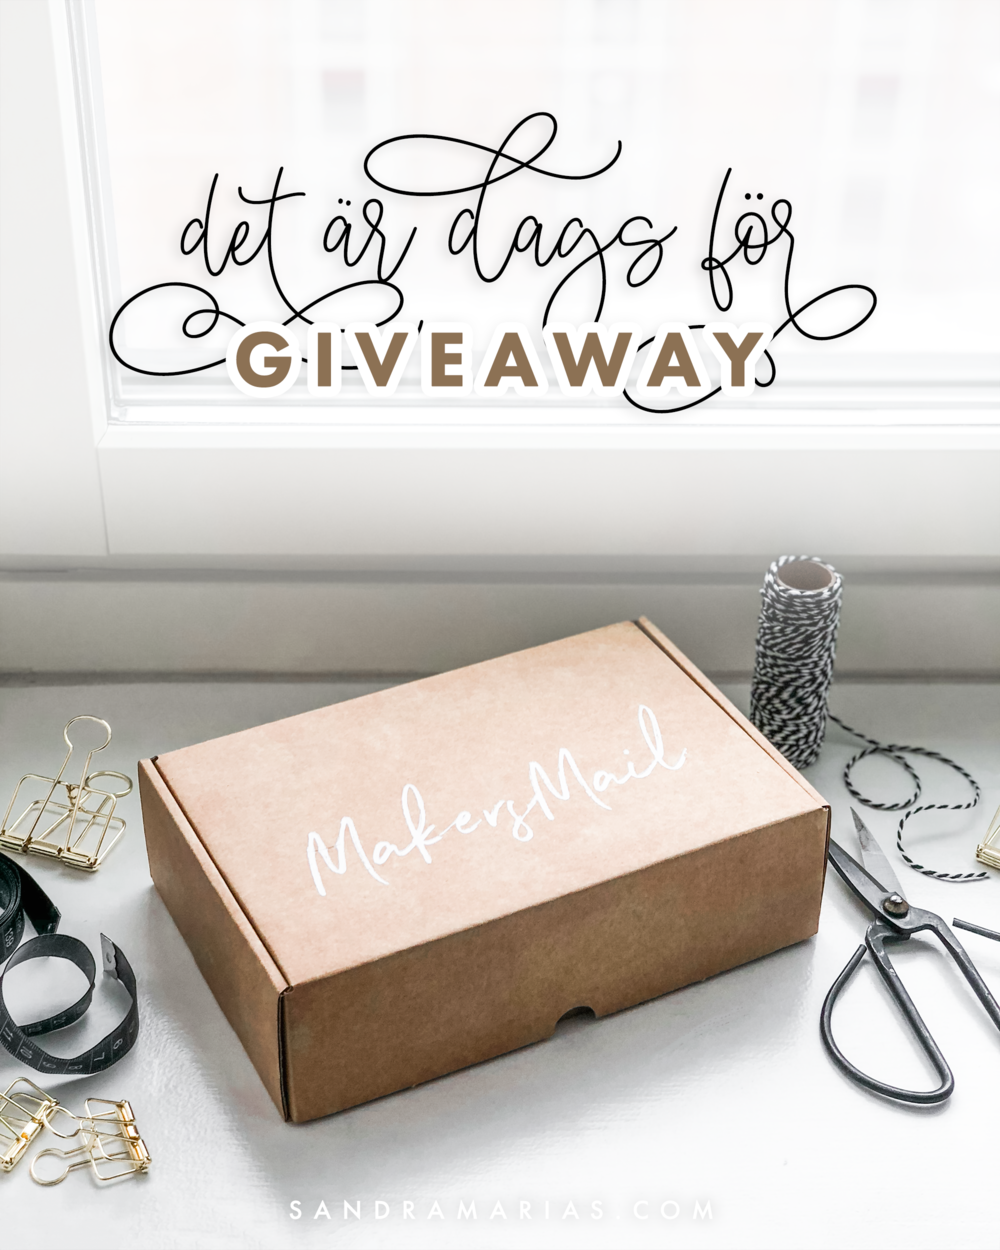 Makers Mail Giveaway | By Sandramaria | Sandramarias.com